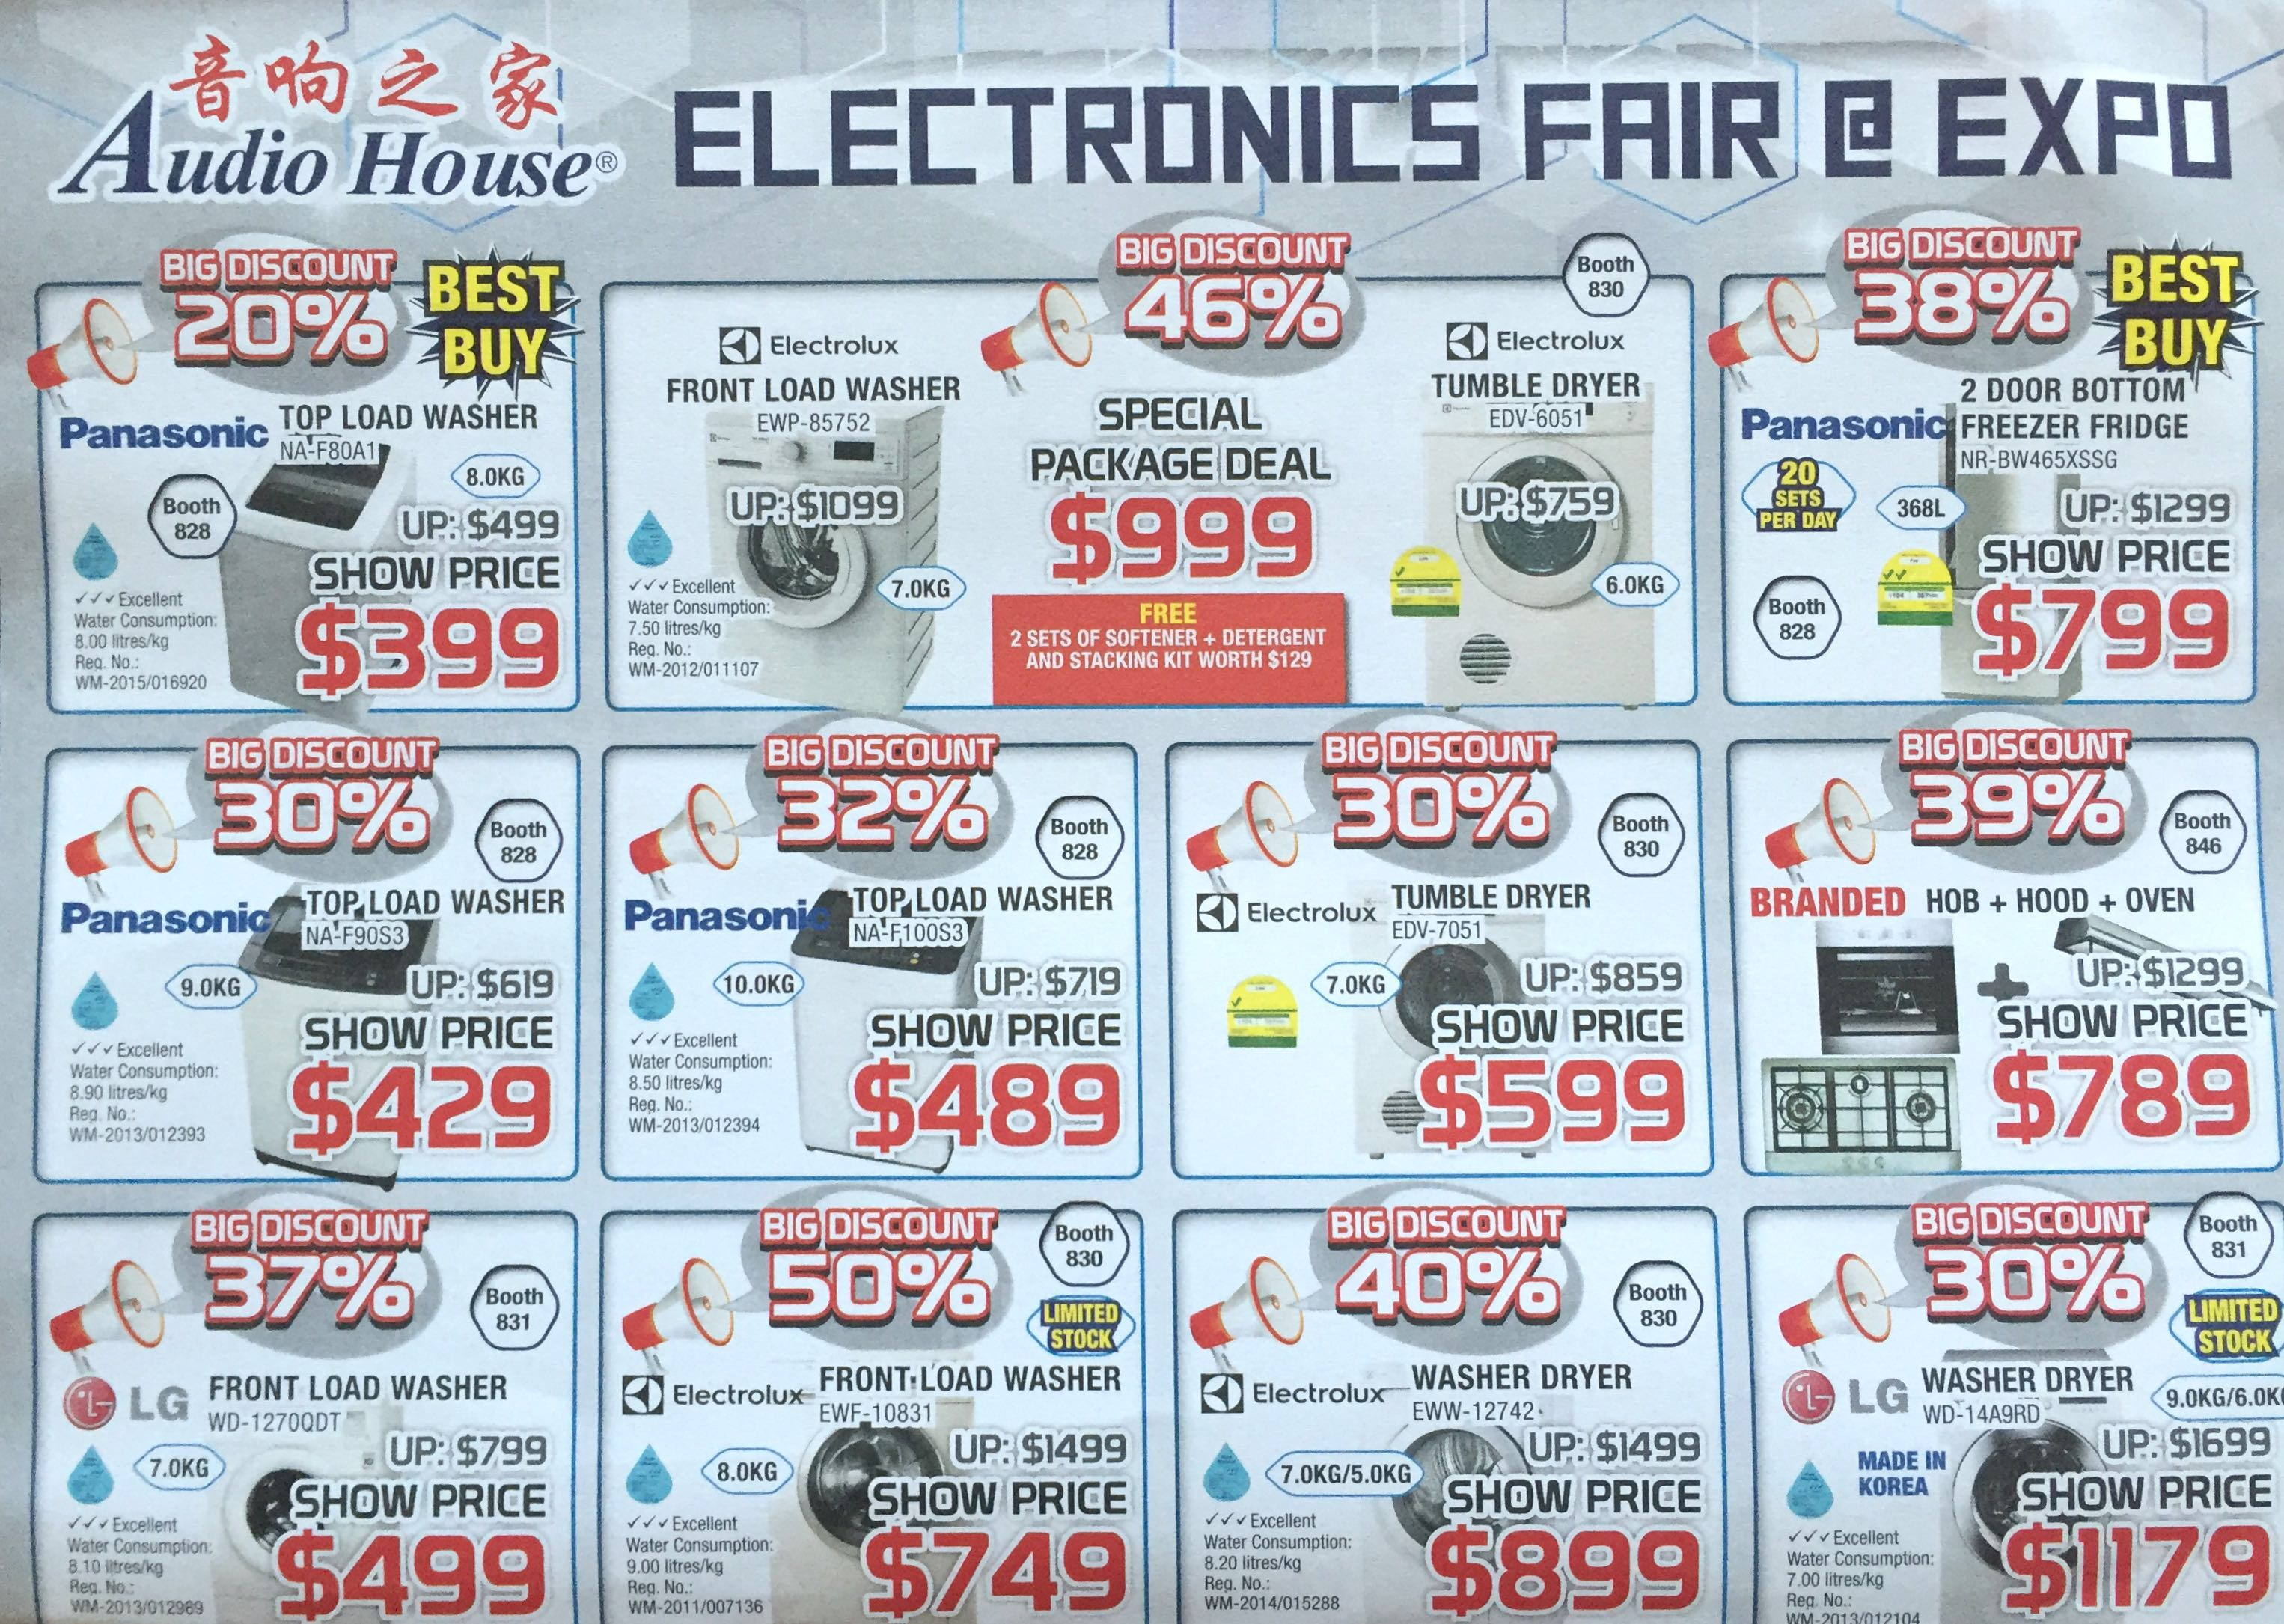 Electronics Fair @ EXPO | 8 - 10 January 2016 | by Audio House | pg4